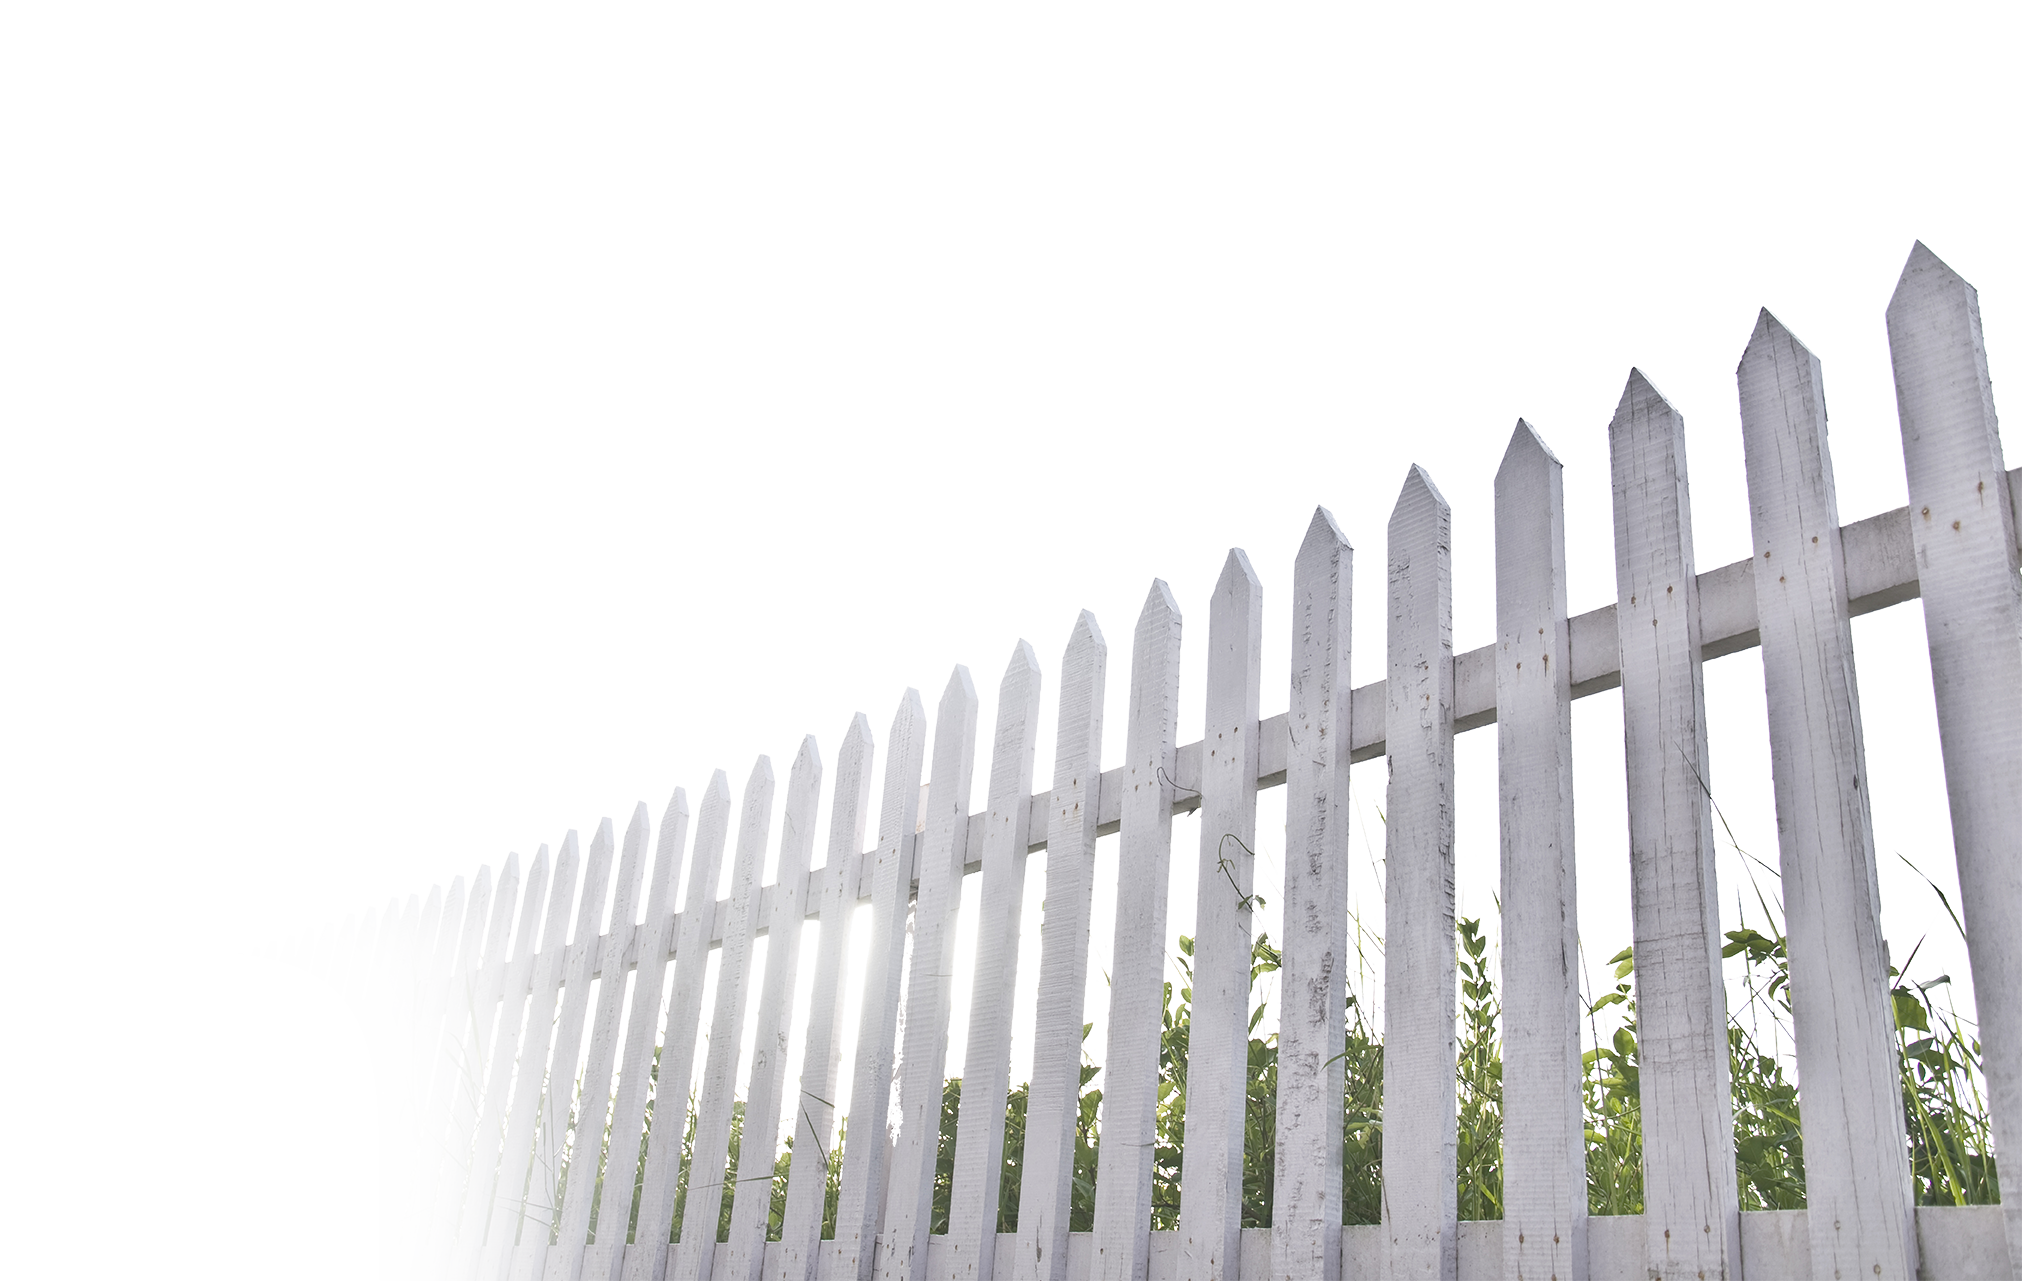 fence, city parkersburg #21518